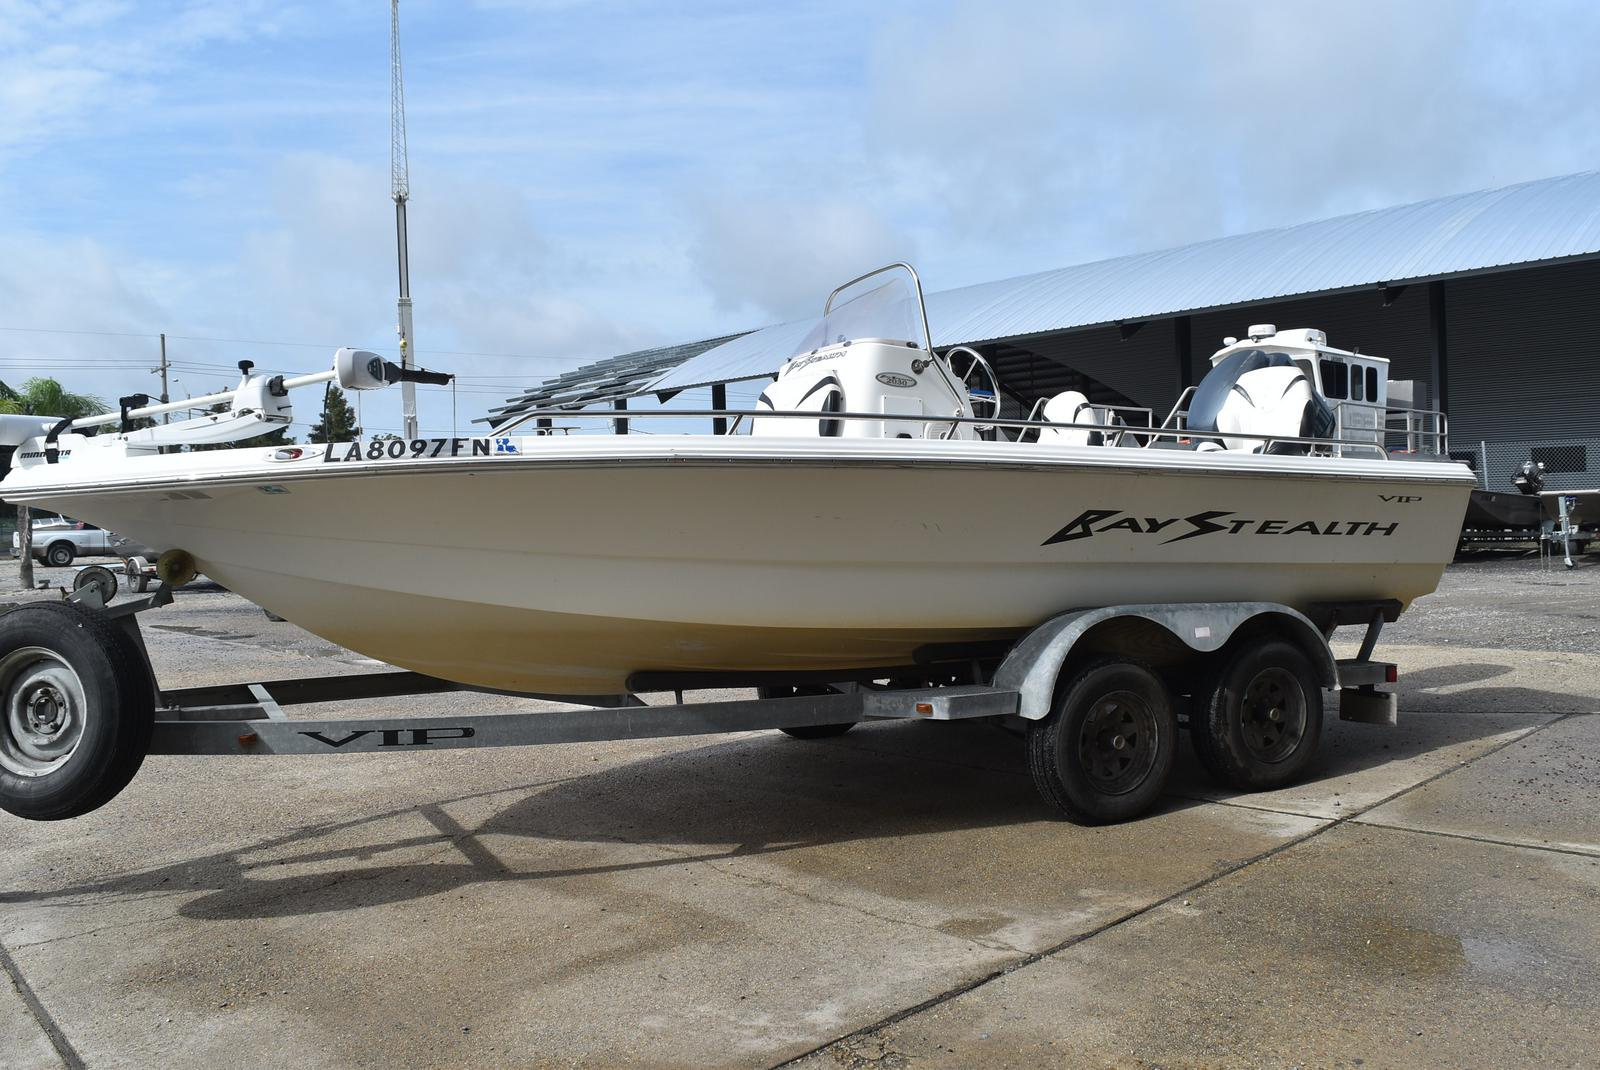 2006 Bay Stealth boat for sale, model of the boat is 2030 & Image # 10 of 12